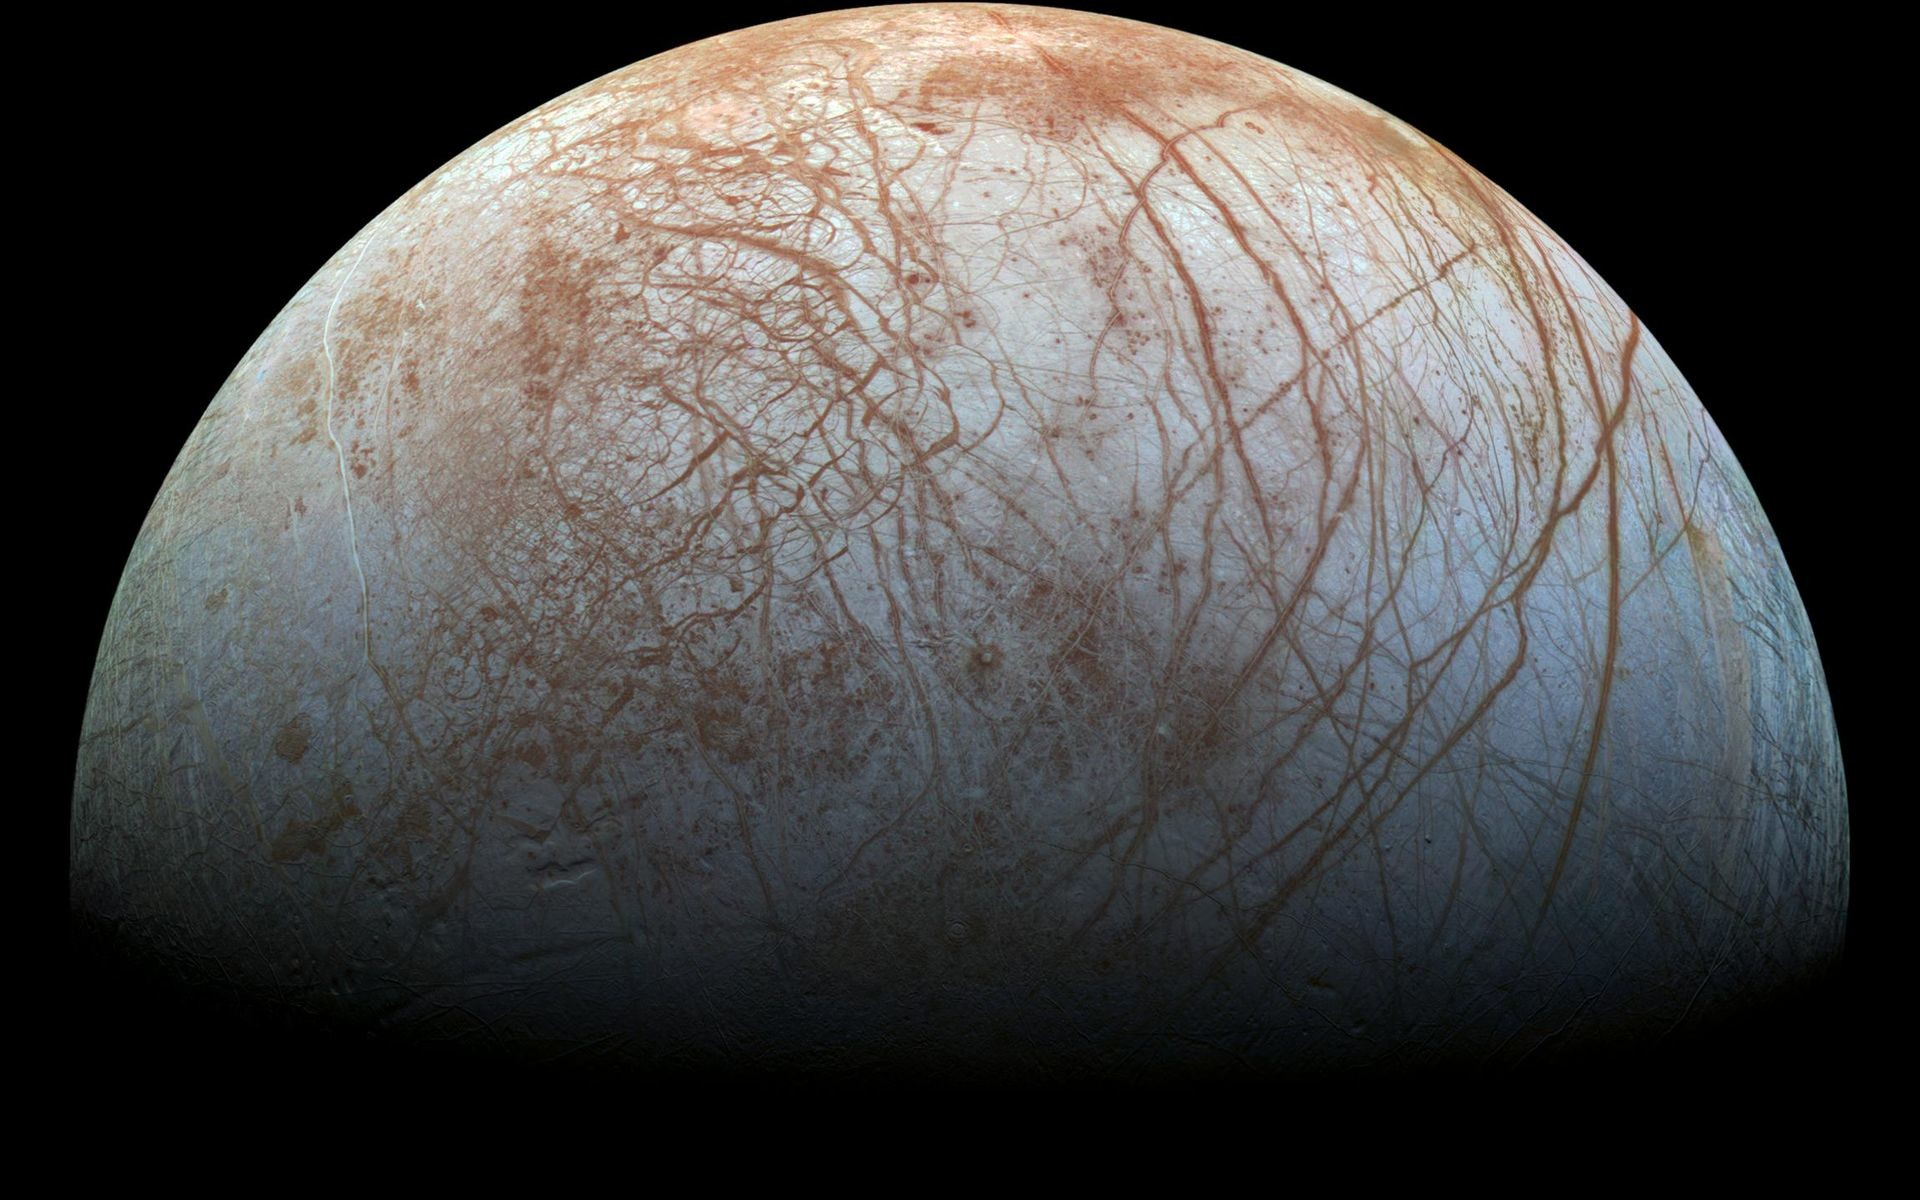 1920x1200 The puzzling, fascinating surface of Jupiter's icy moon Europa looms large  in images taken by